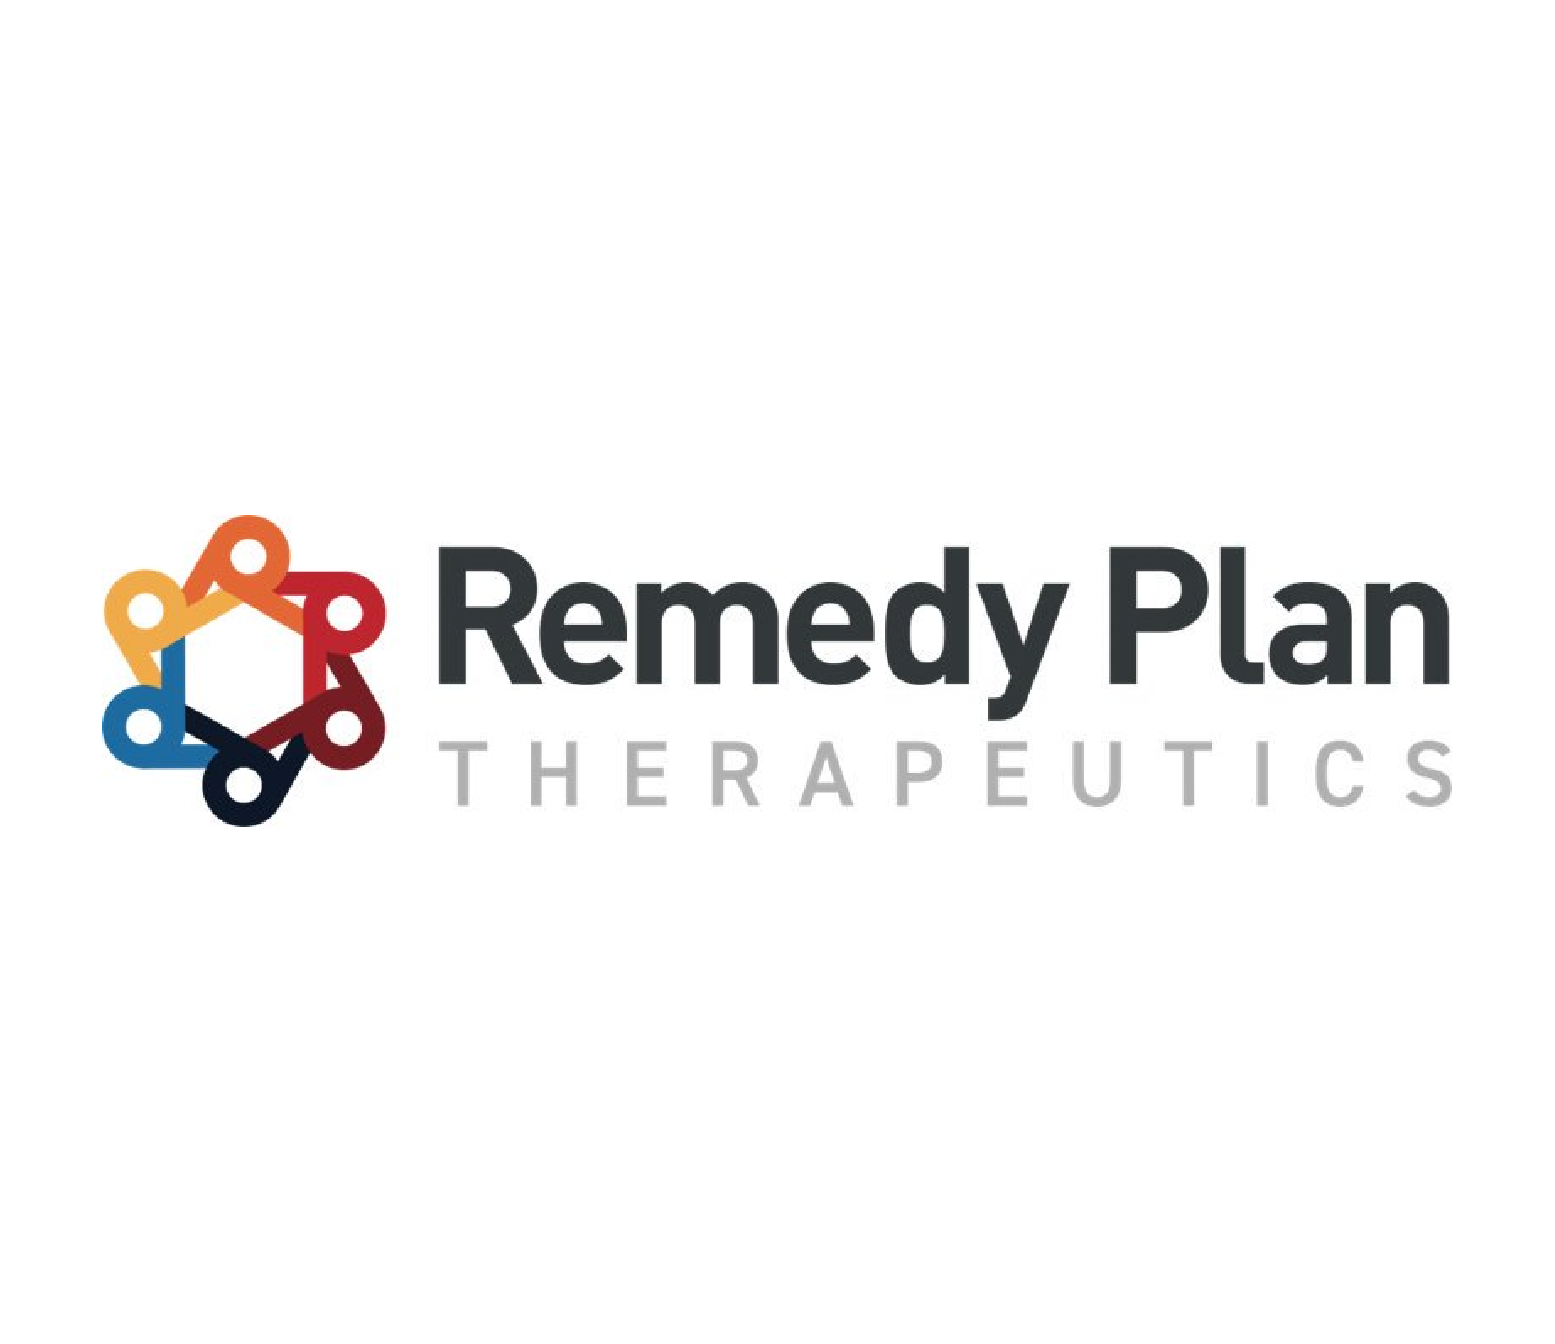 Remedy Plan is developing therapeutics that halt tumor growth and disrupt the cancer stem cells that cause metastasis.